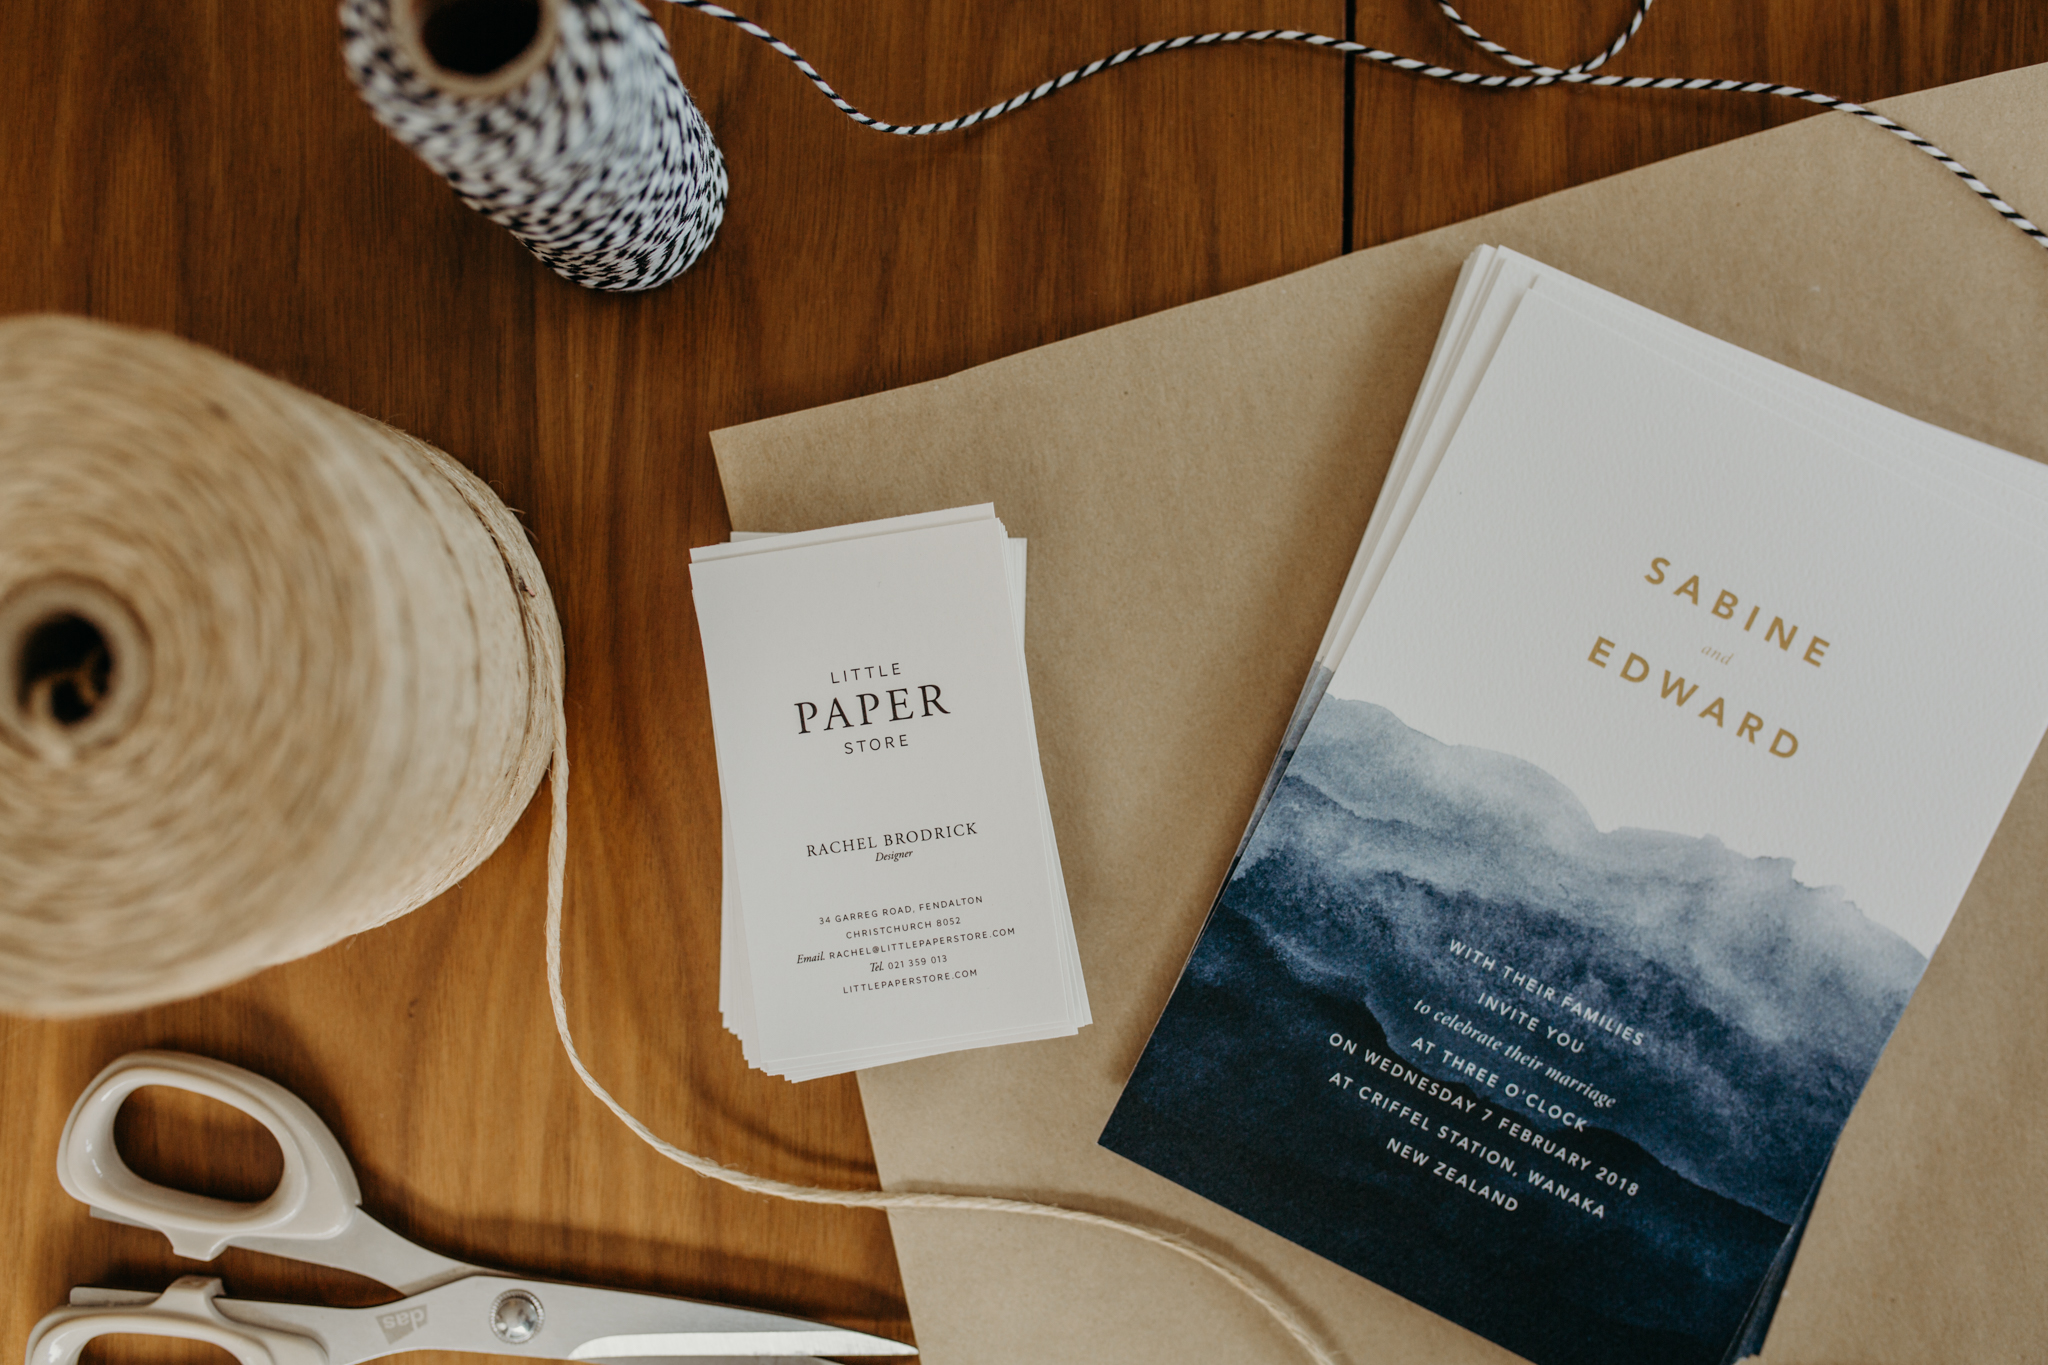 A Little Paper Store creation captured by Hannah Bird Photography